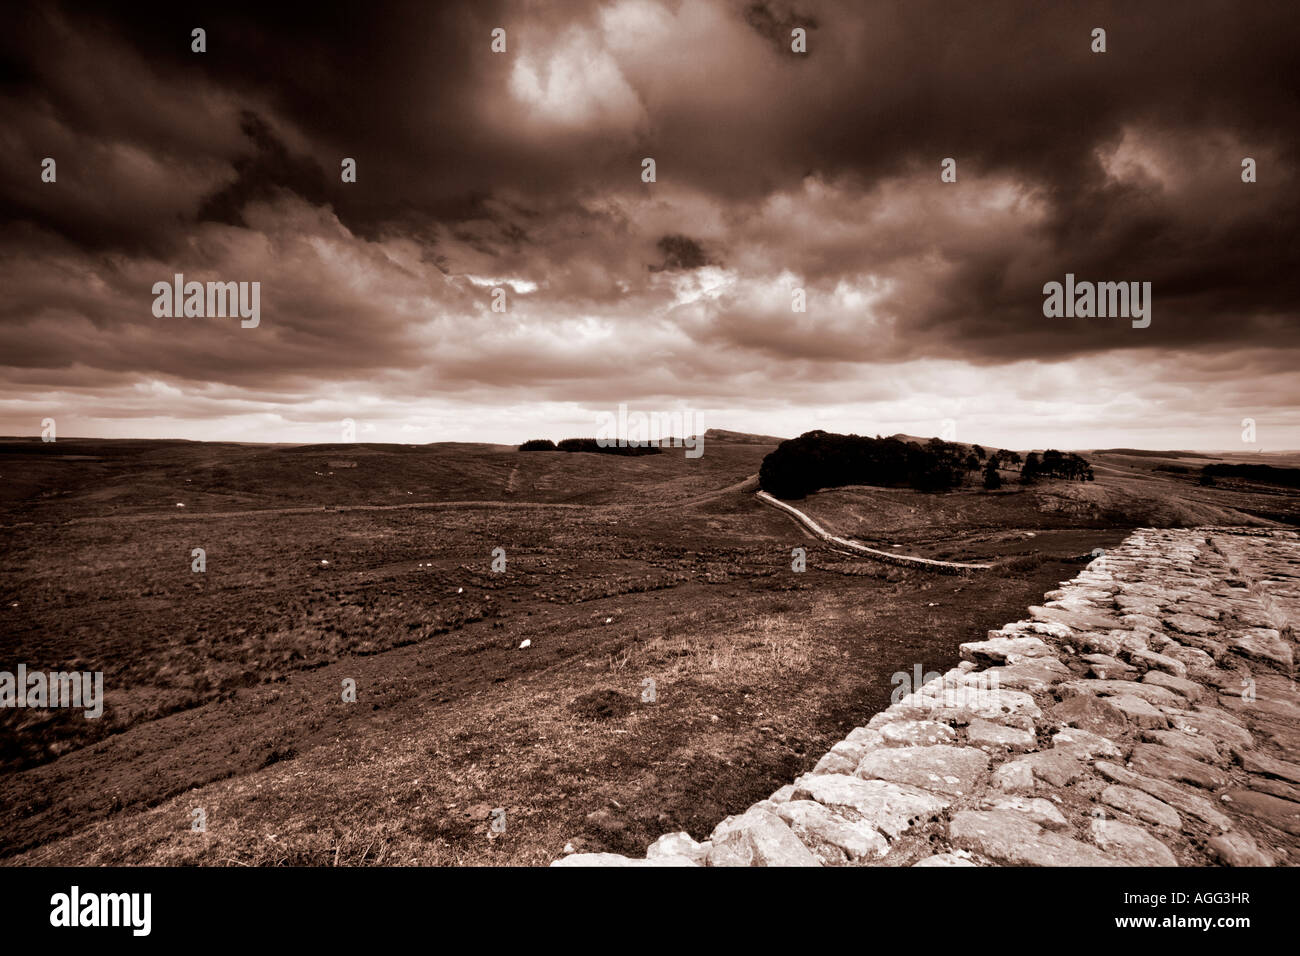 Sepia Image of Housesteads Fort, Hadrian's Wall, Northumberland, UK - Stock Image